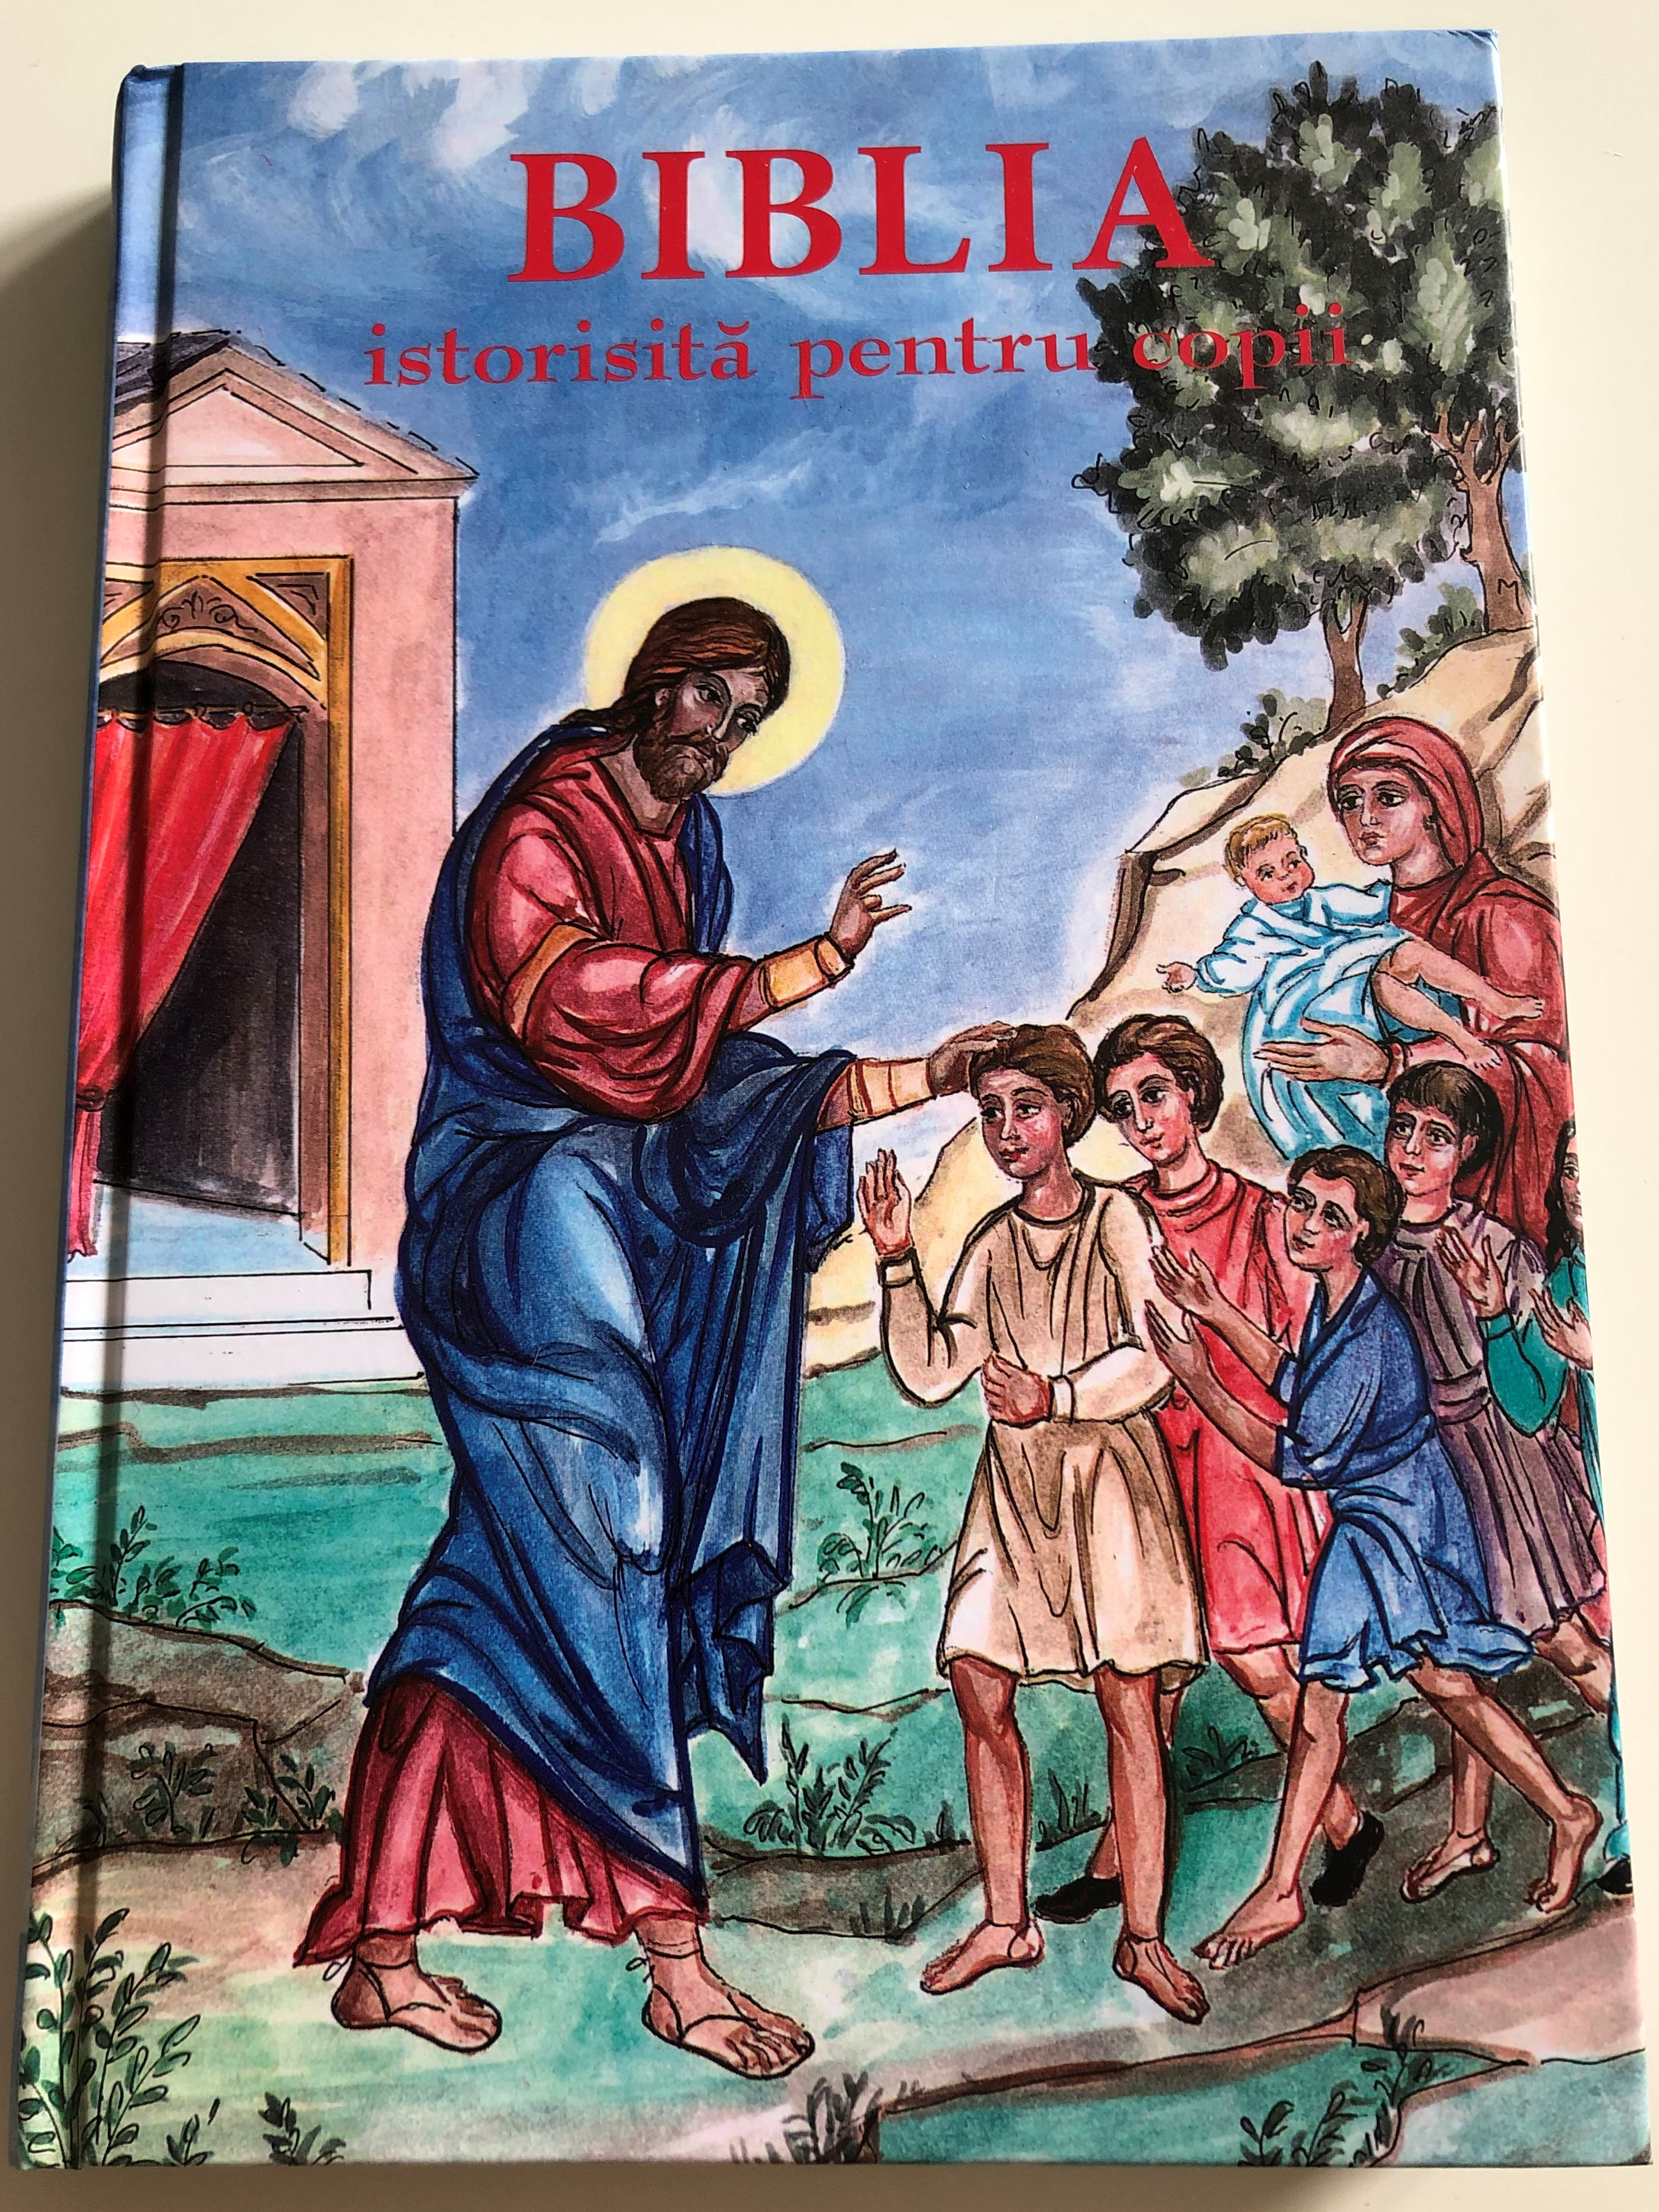 -biblia-istorisit-pentru-copii-bible-stories-for-children-romanian-orthodox-children-s-bible-hardcover-2013-orthodox-style-illustrations-by-martha-xynopoulou-kapetanakou-societ-ii-biblice-interconfesionale-din-rom-nia-1-.jpg